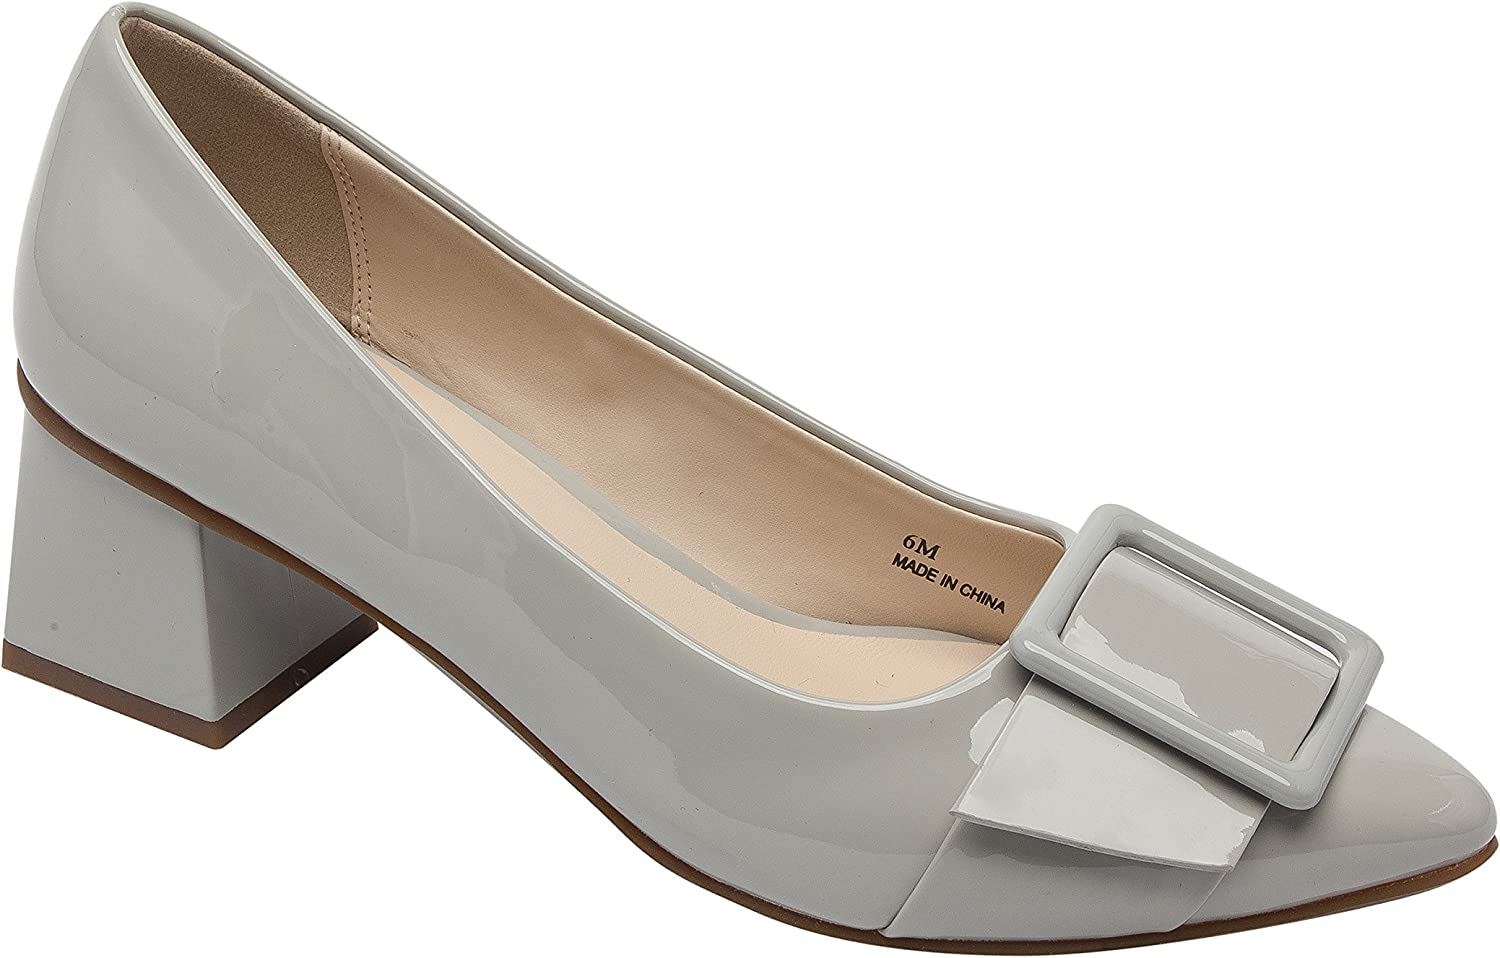 Pic & Pay Finlee   Women's Square Mid-Height Heel Comfortable Pointy Toe Belted Vegan Patent Pump Grey Vegan Patent 9.5M